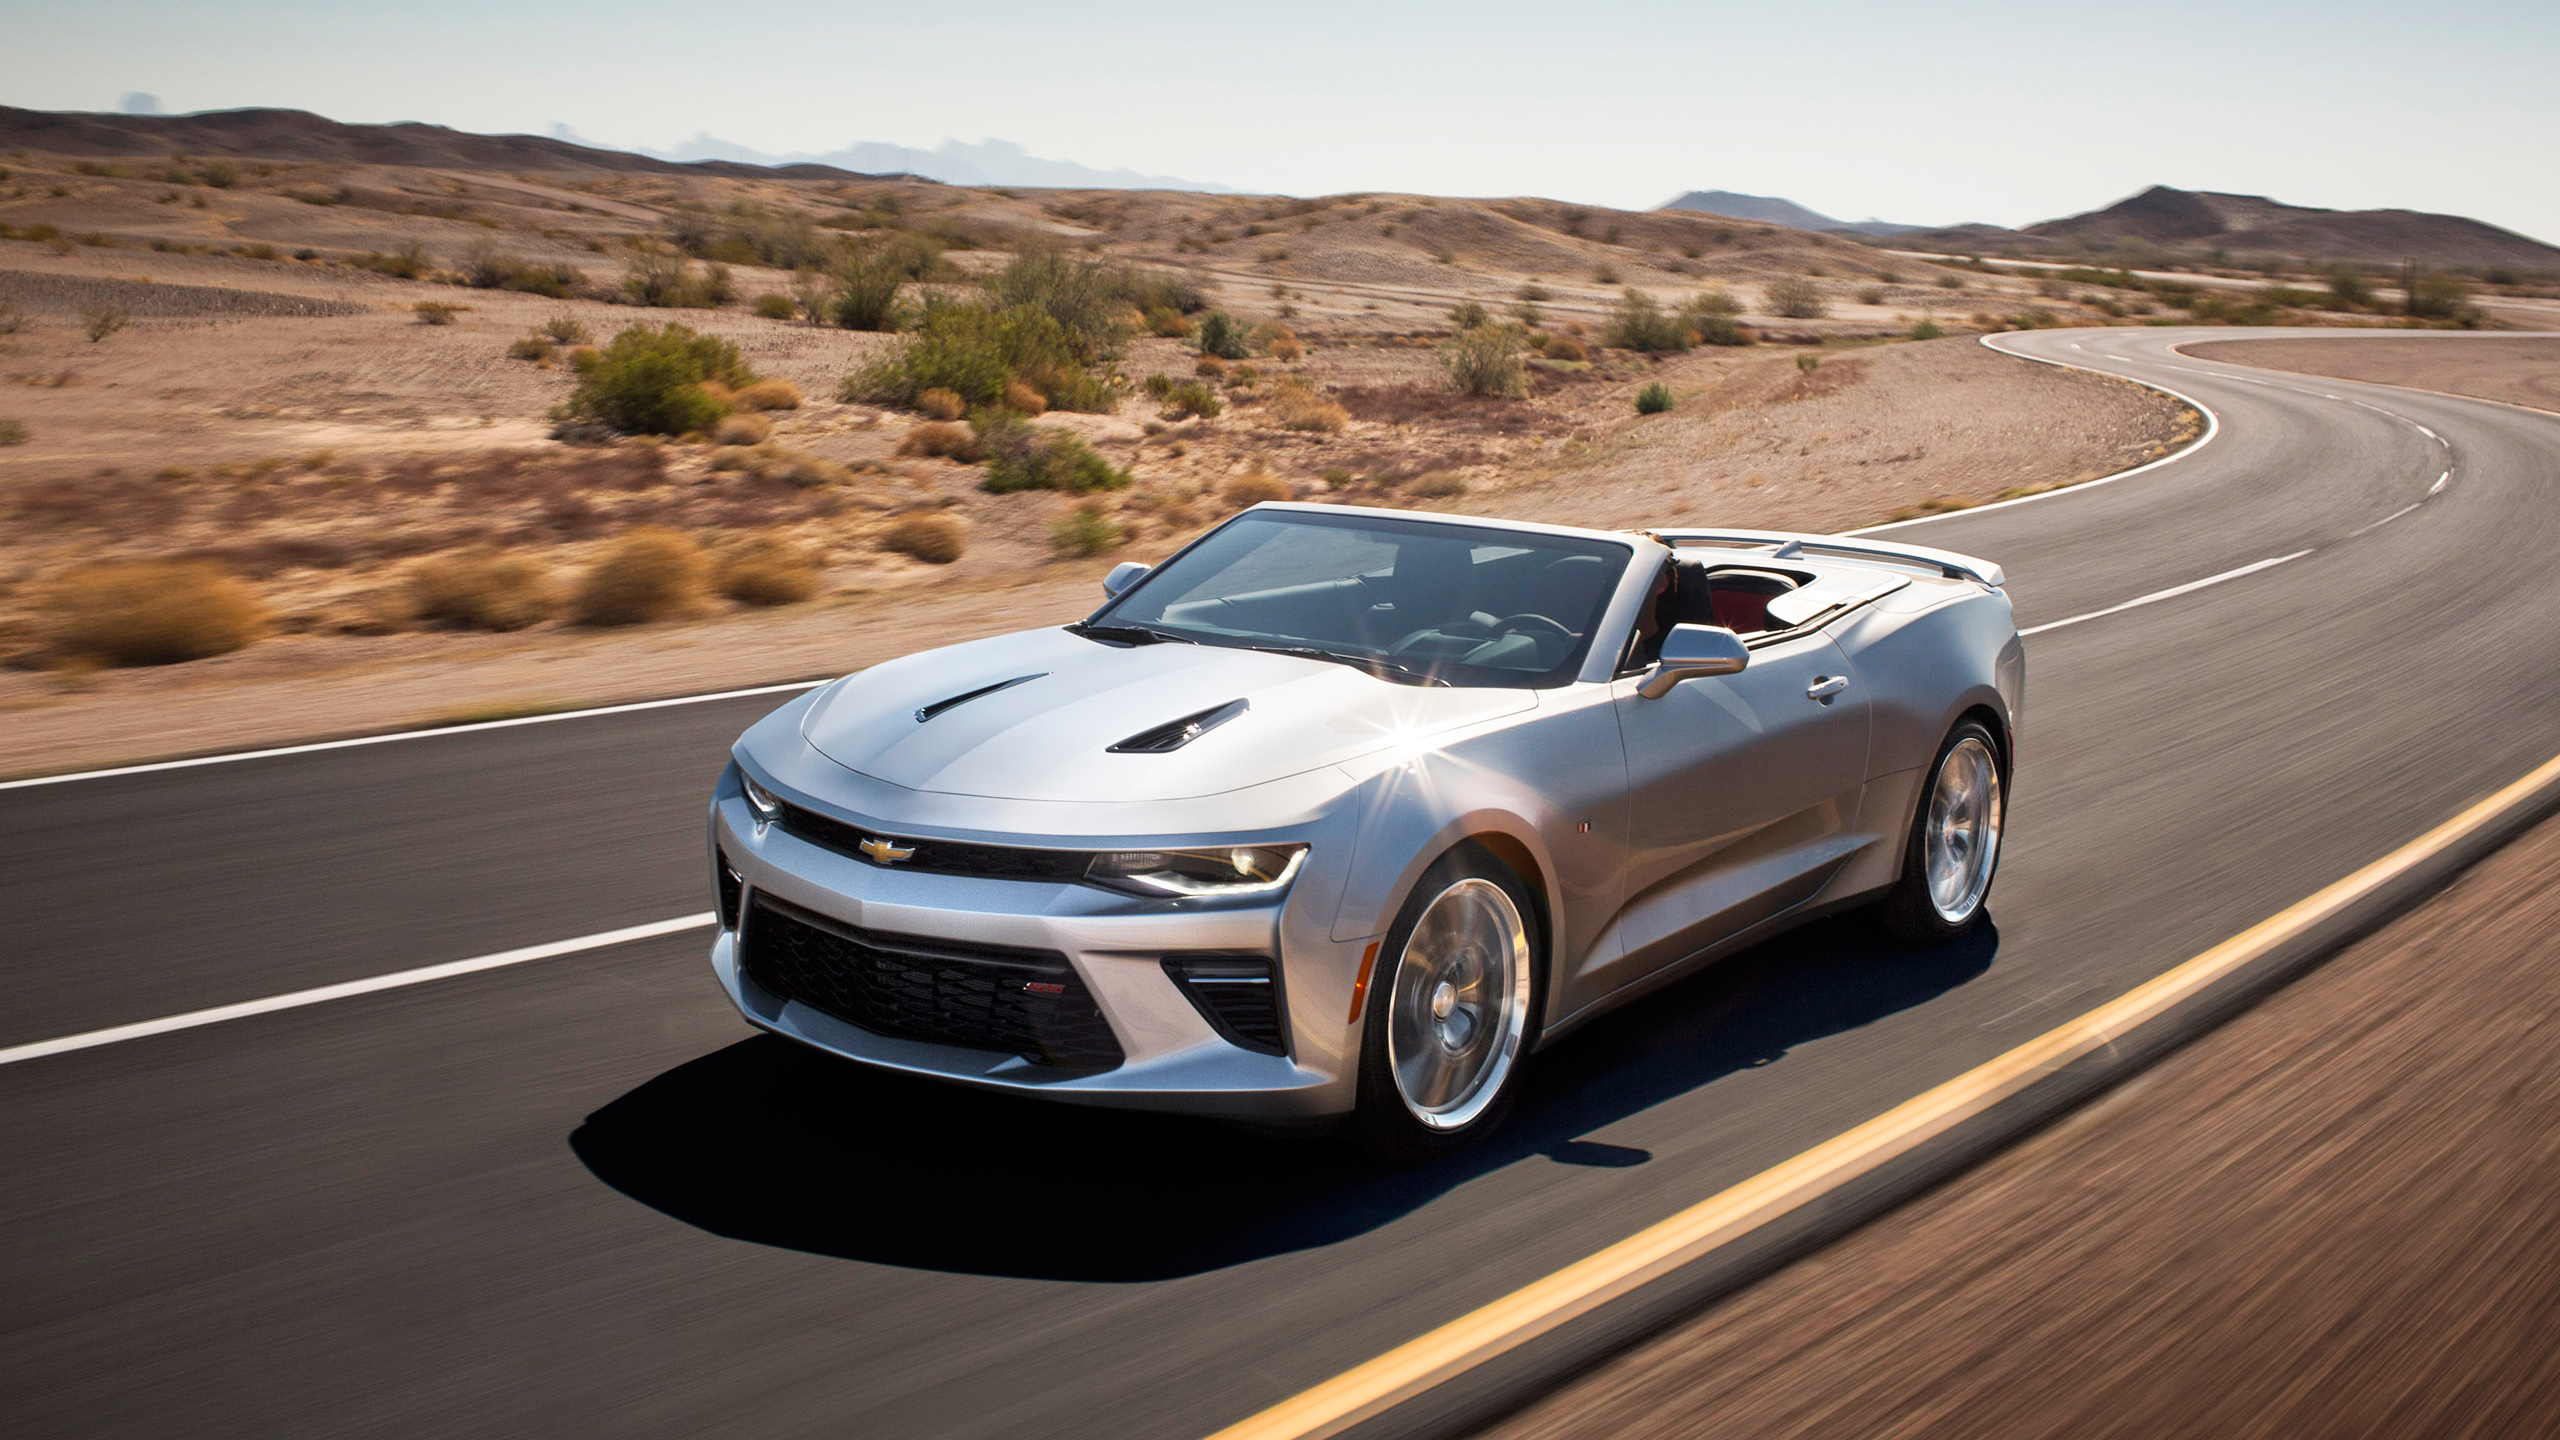 2016 Chevrolet Camaro Convertible Wallpaper HD Car Wallpapers 2560x1440